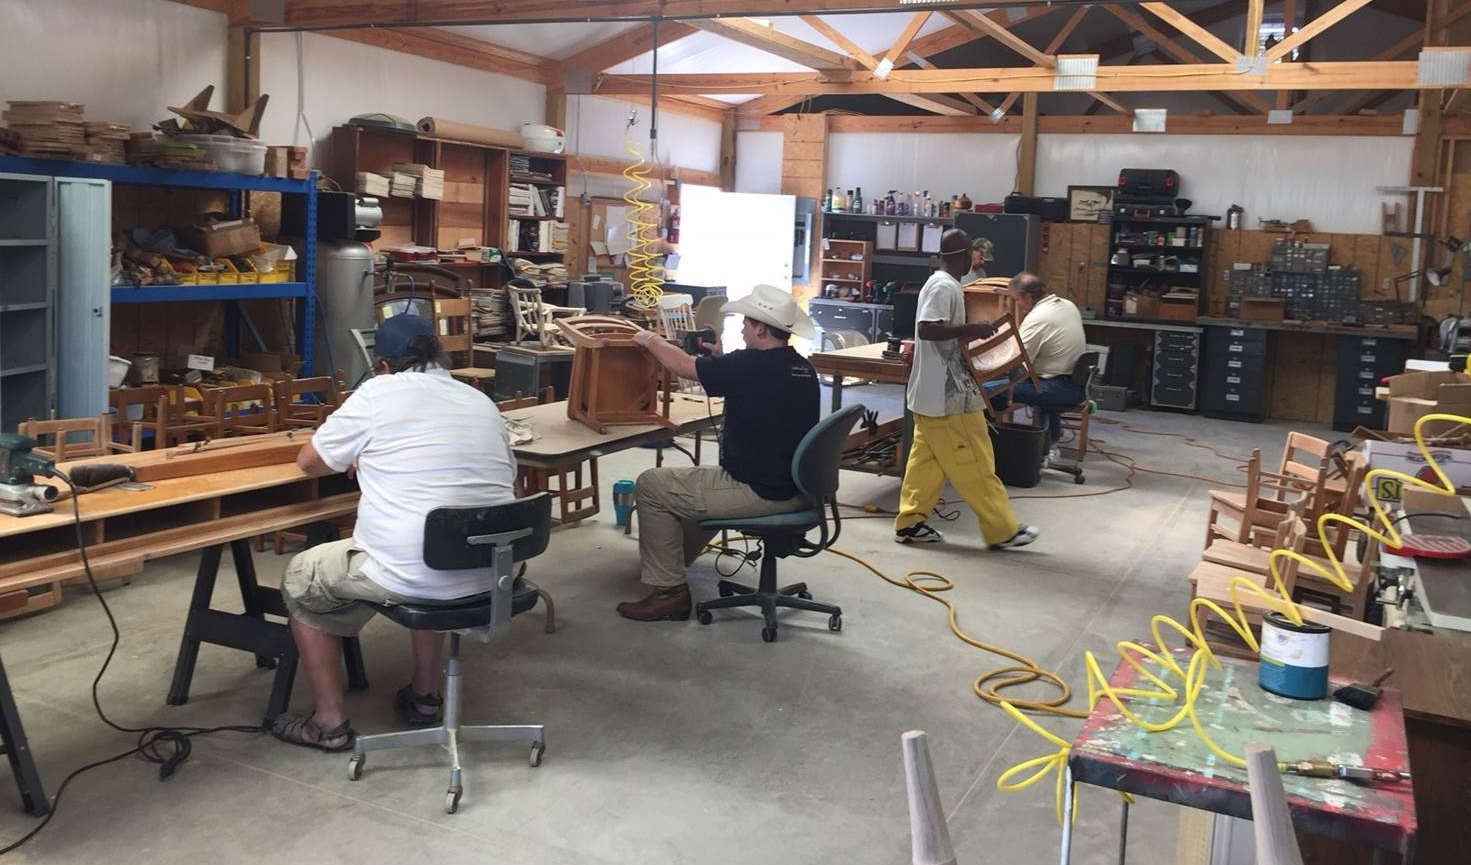 To Furnishing a Future - In 2014, Pathway House began its Furnishing a Future program where clients can learn job skills and discipline. A United Way partnership underwrites this program that provides the work experience necessary to build resumes and an opportunity to save money.